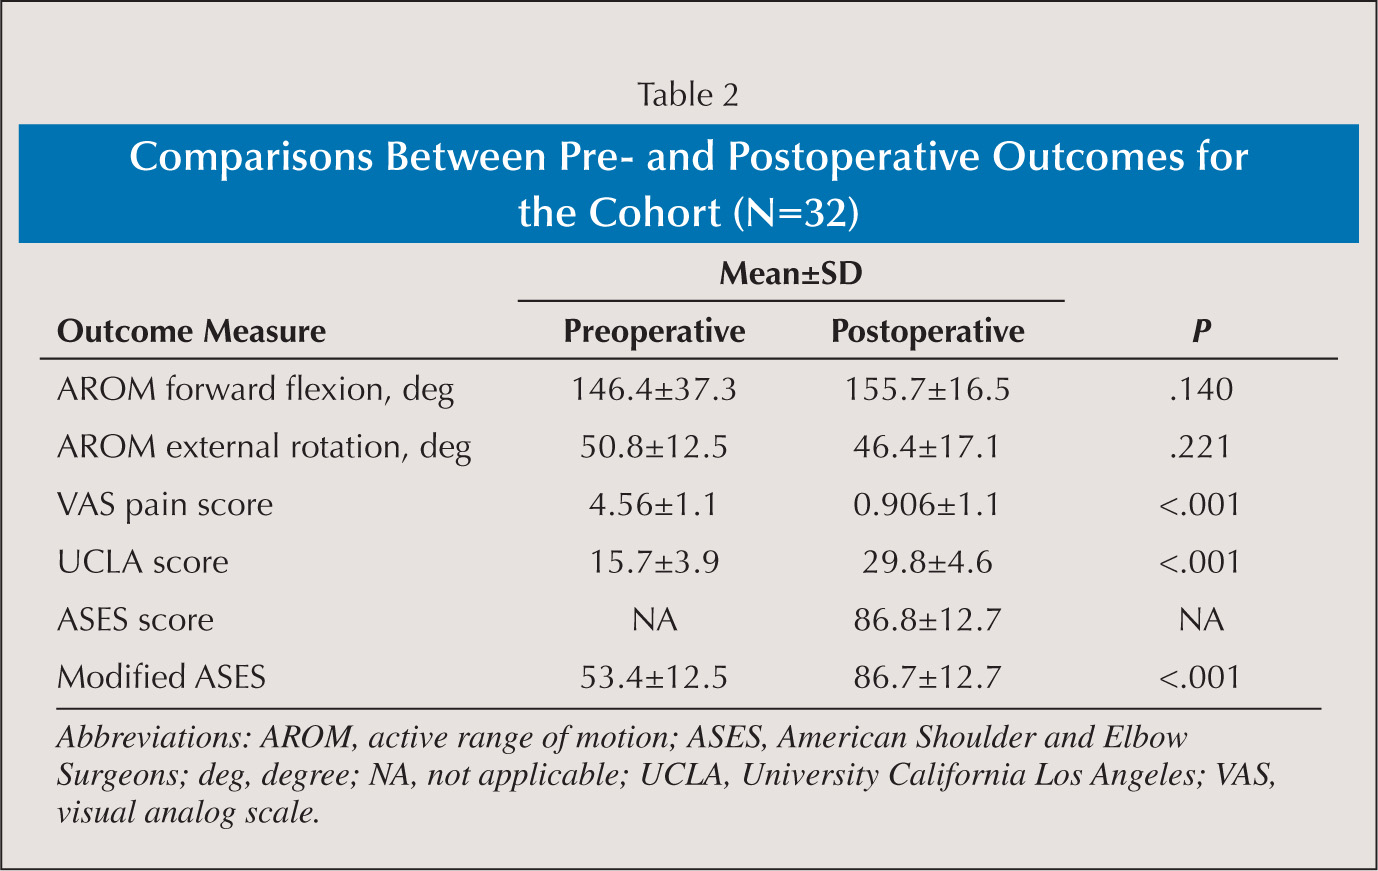 Comparisons Between Pre- and Postoperative Outcomes for the Cohort (N=32)